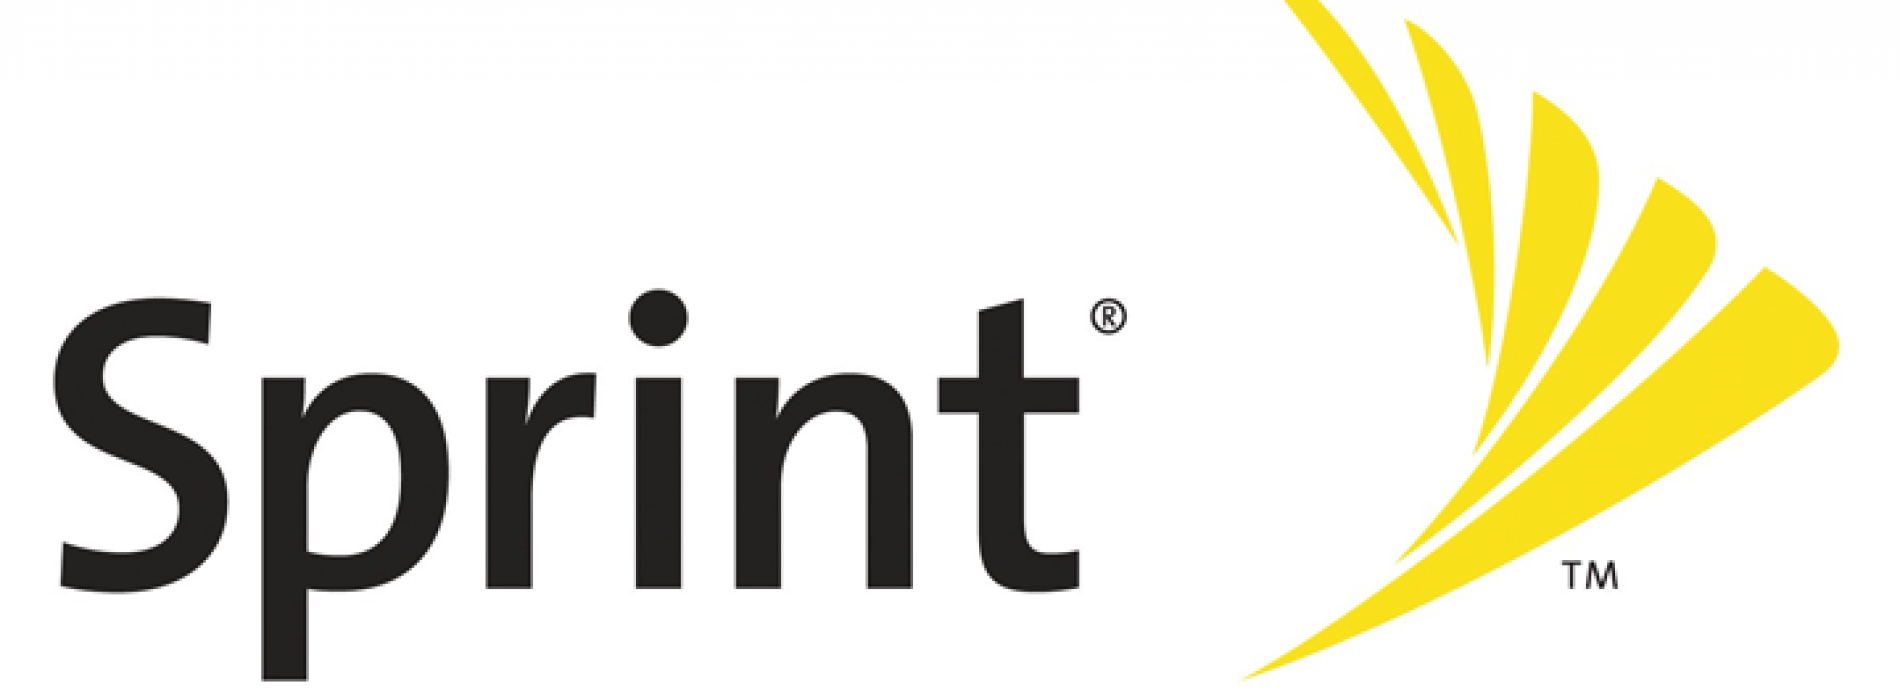 Sprint reportedly to offer branded prepaid service in late January